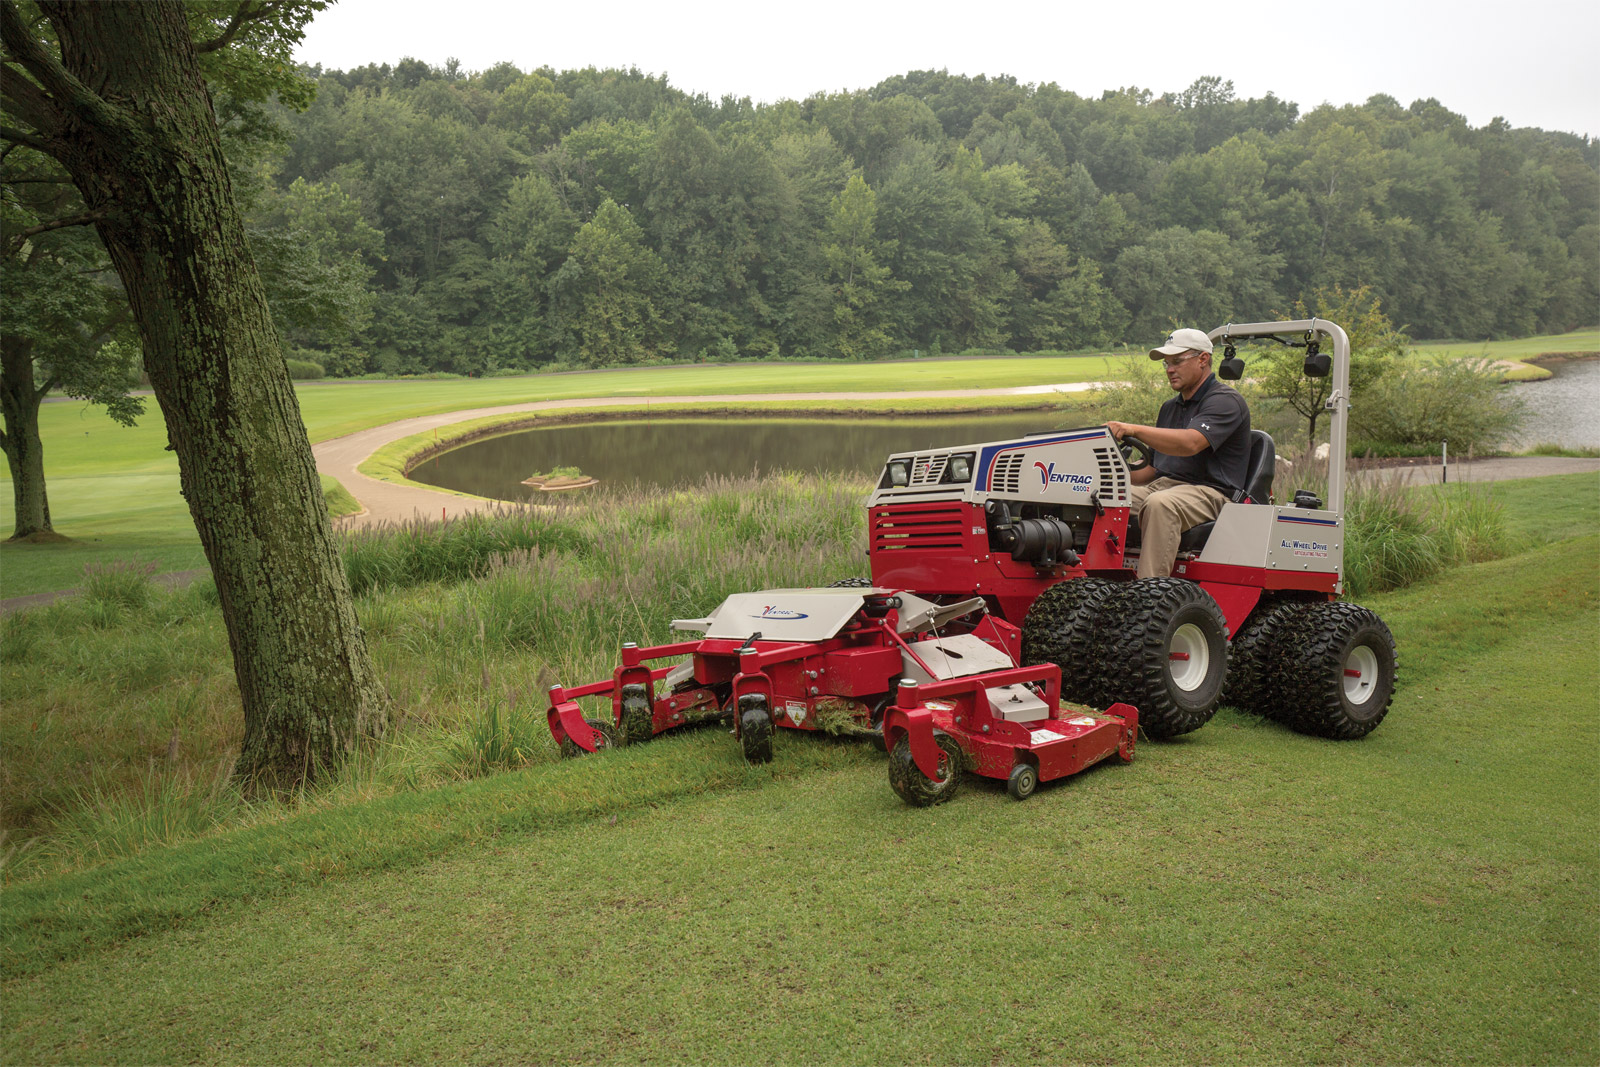 Garden Tractor Without Mower Deck : Ventrac mowers